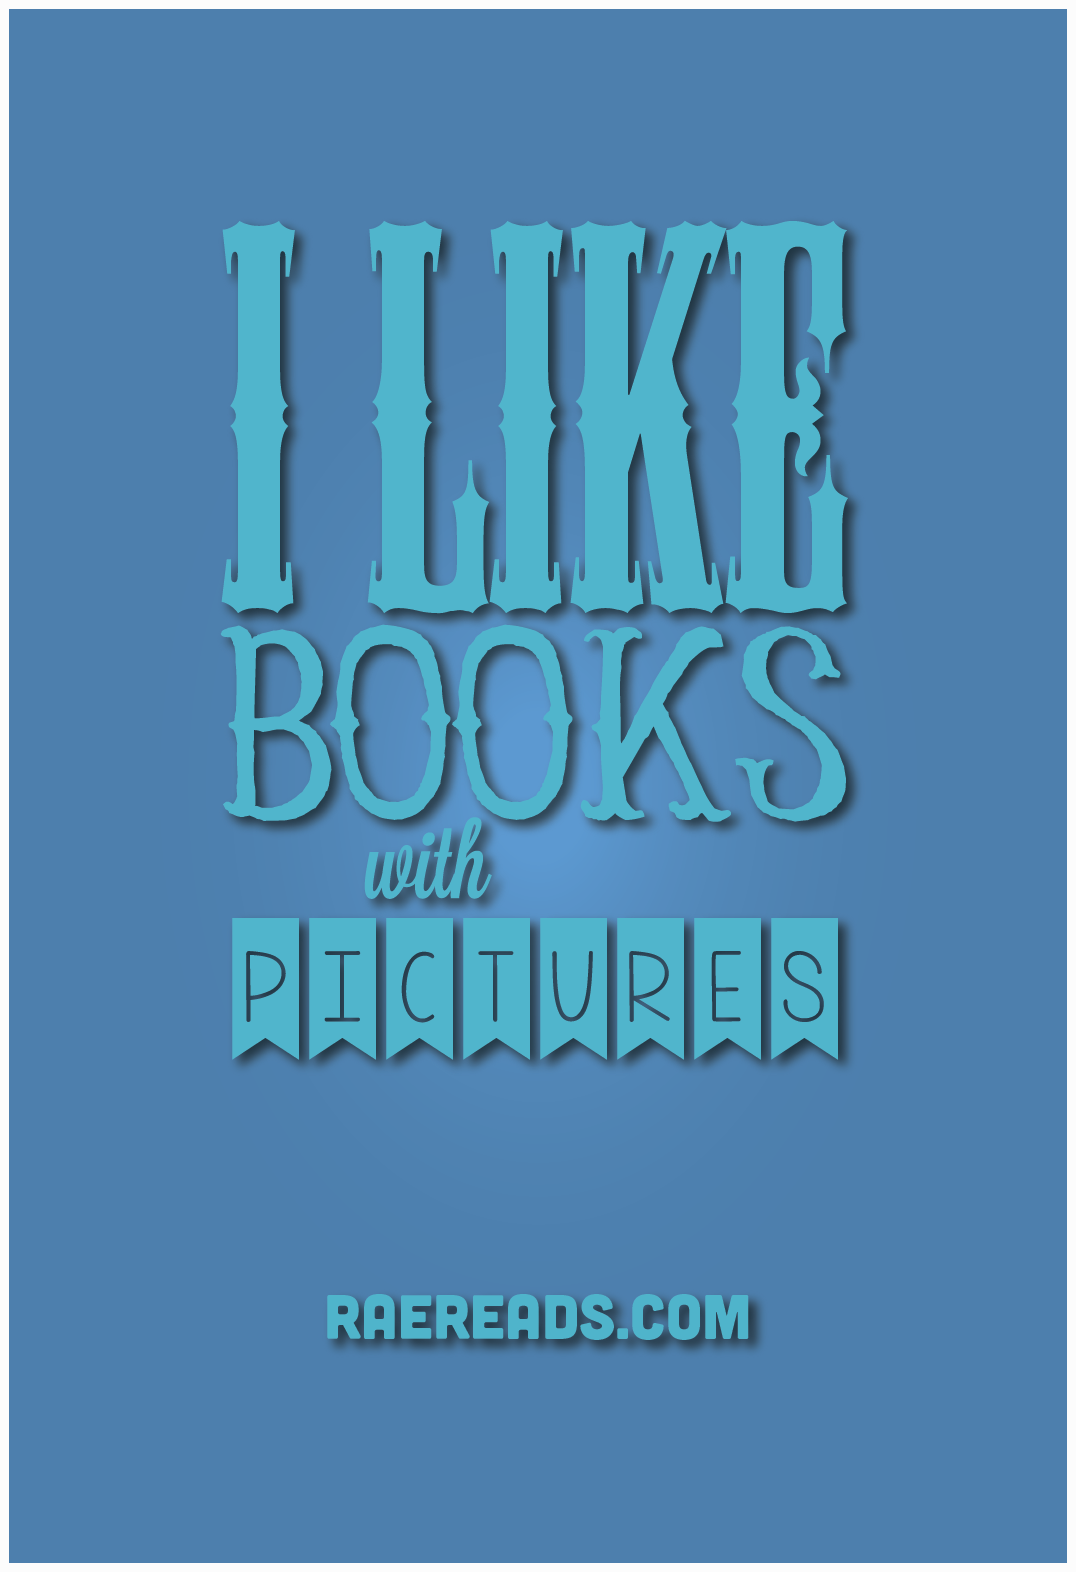 books with pictures | a freebie from raereads.com